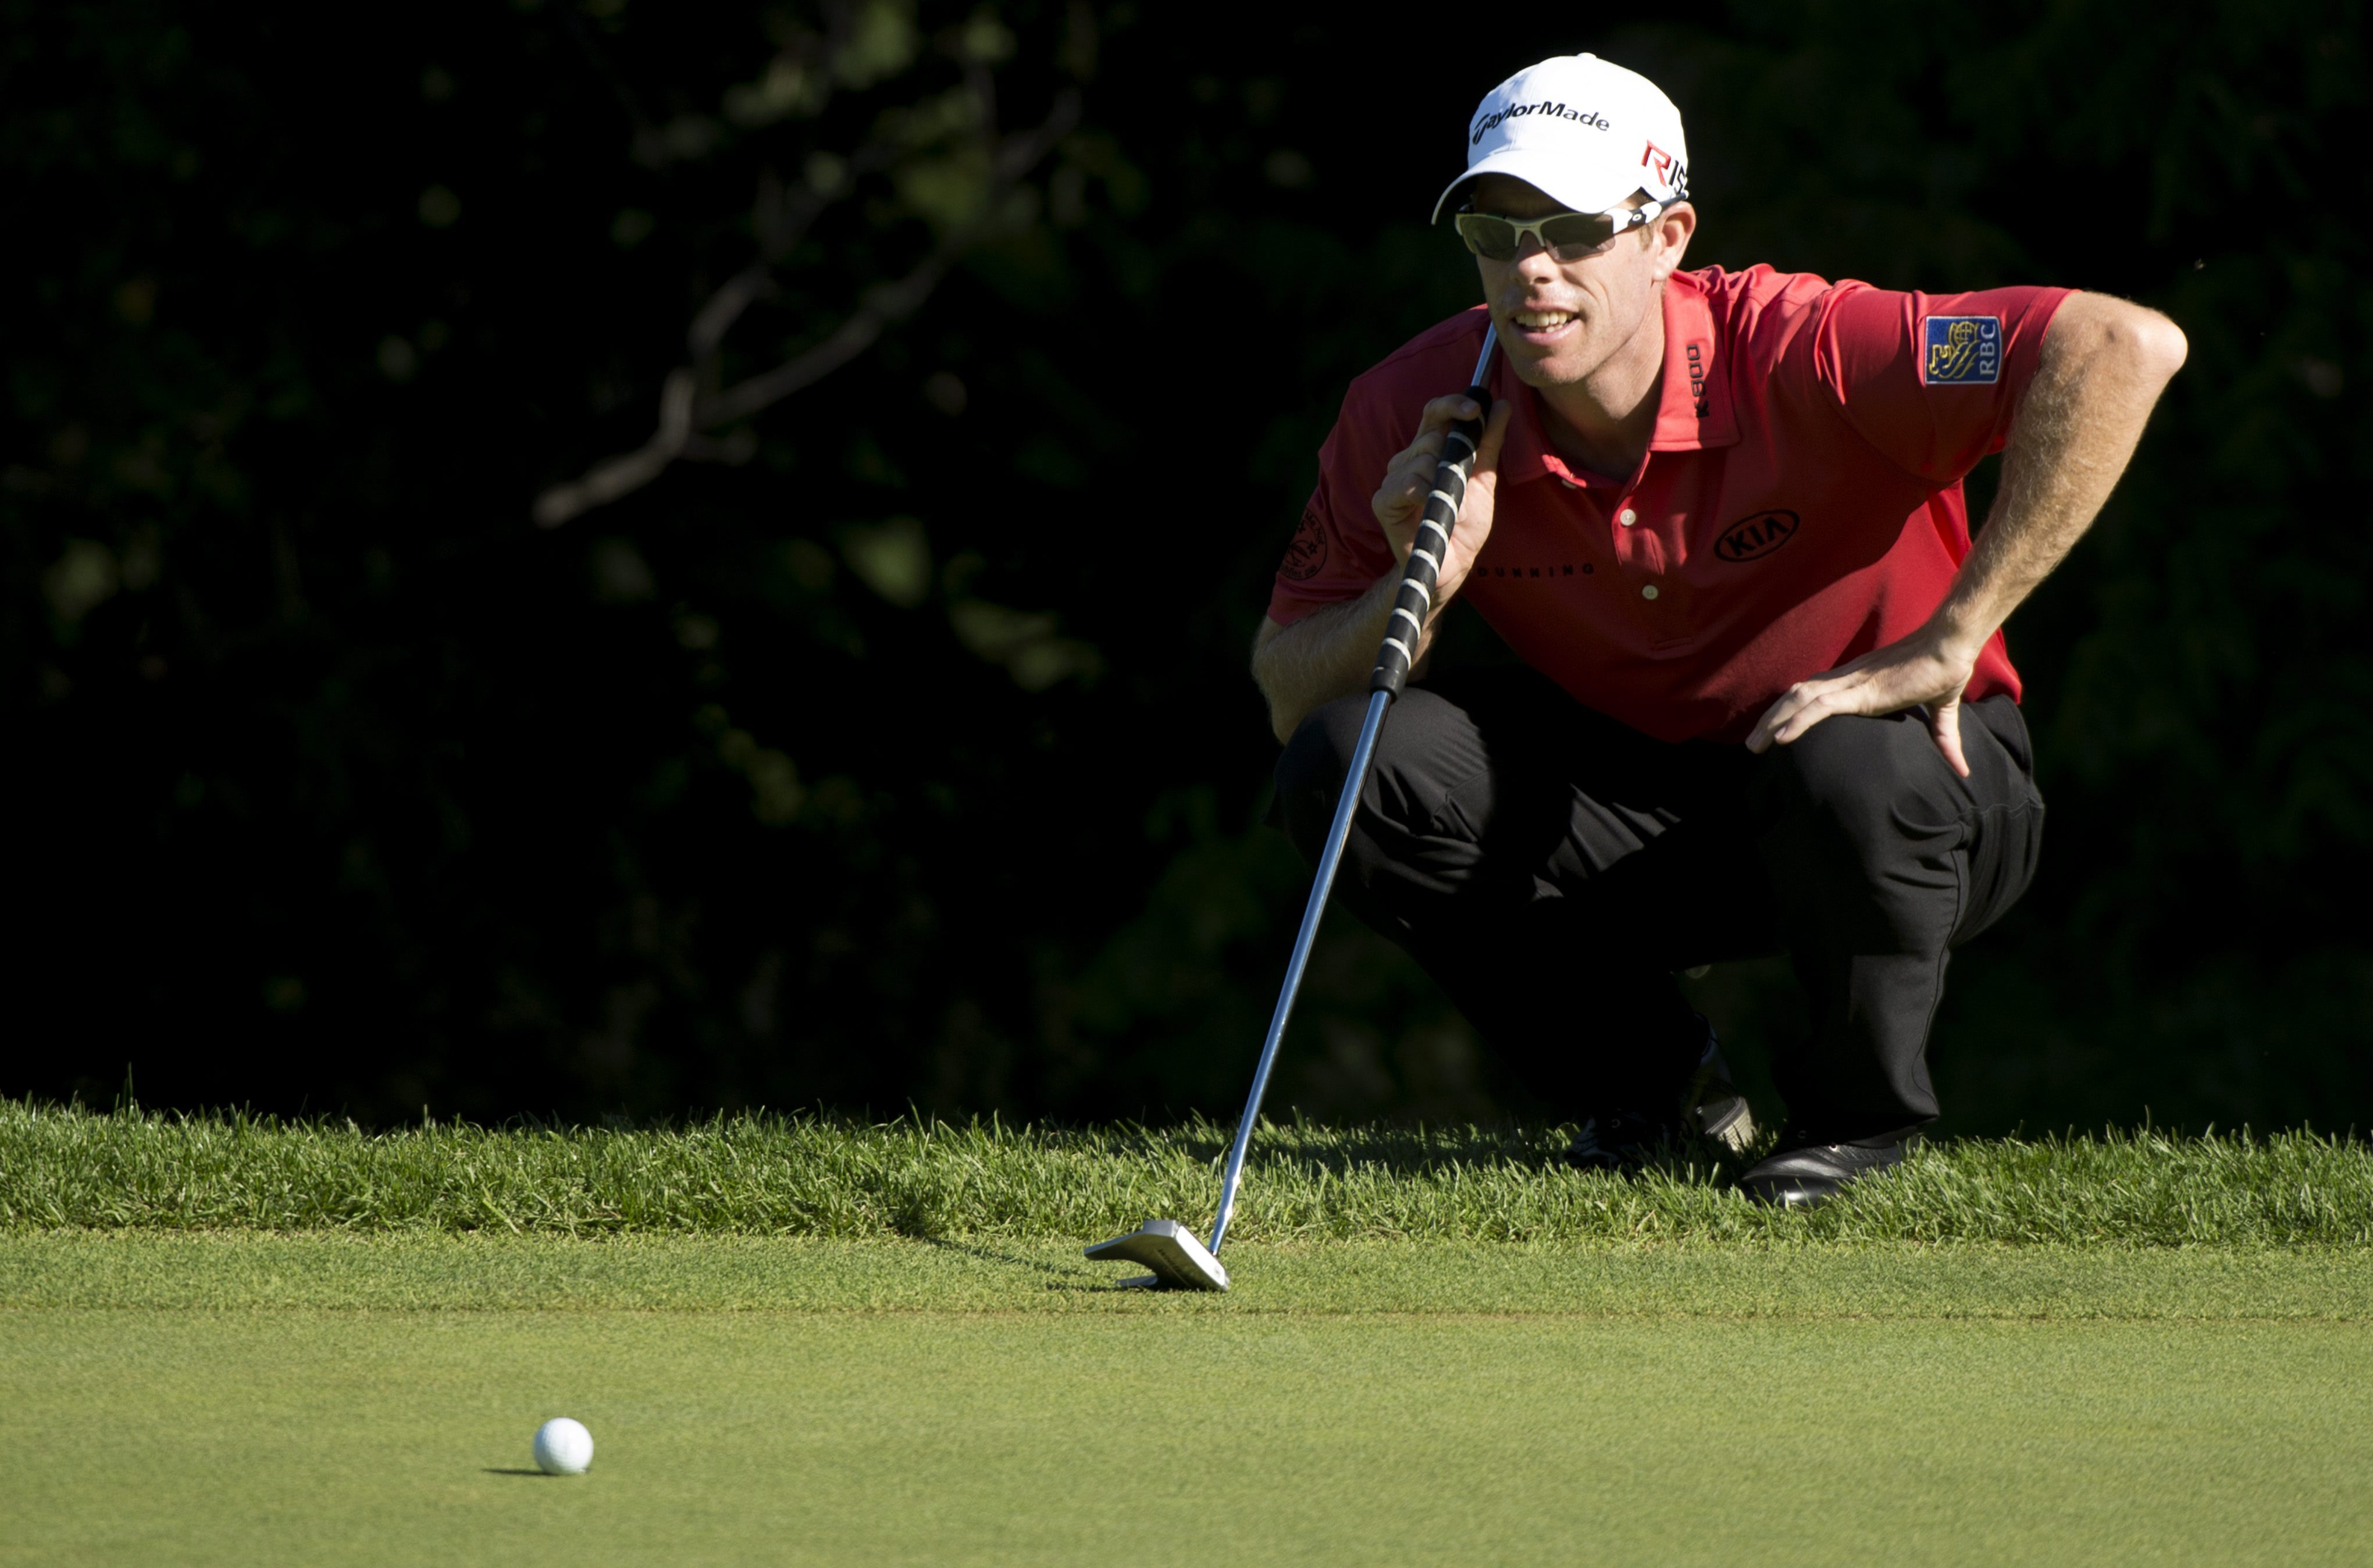 David Hearn, of Canada,  lines up a putt on the 16th hole green during second round of play at the Canadian Open golf tournament in Oakville, Ontario, Friday, July 24, 2015. (Paul Chiasson/The Canadian Press via AP)